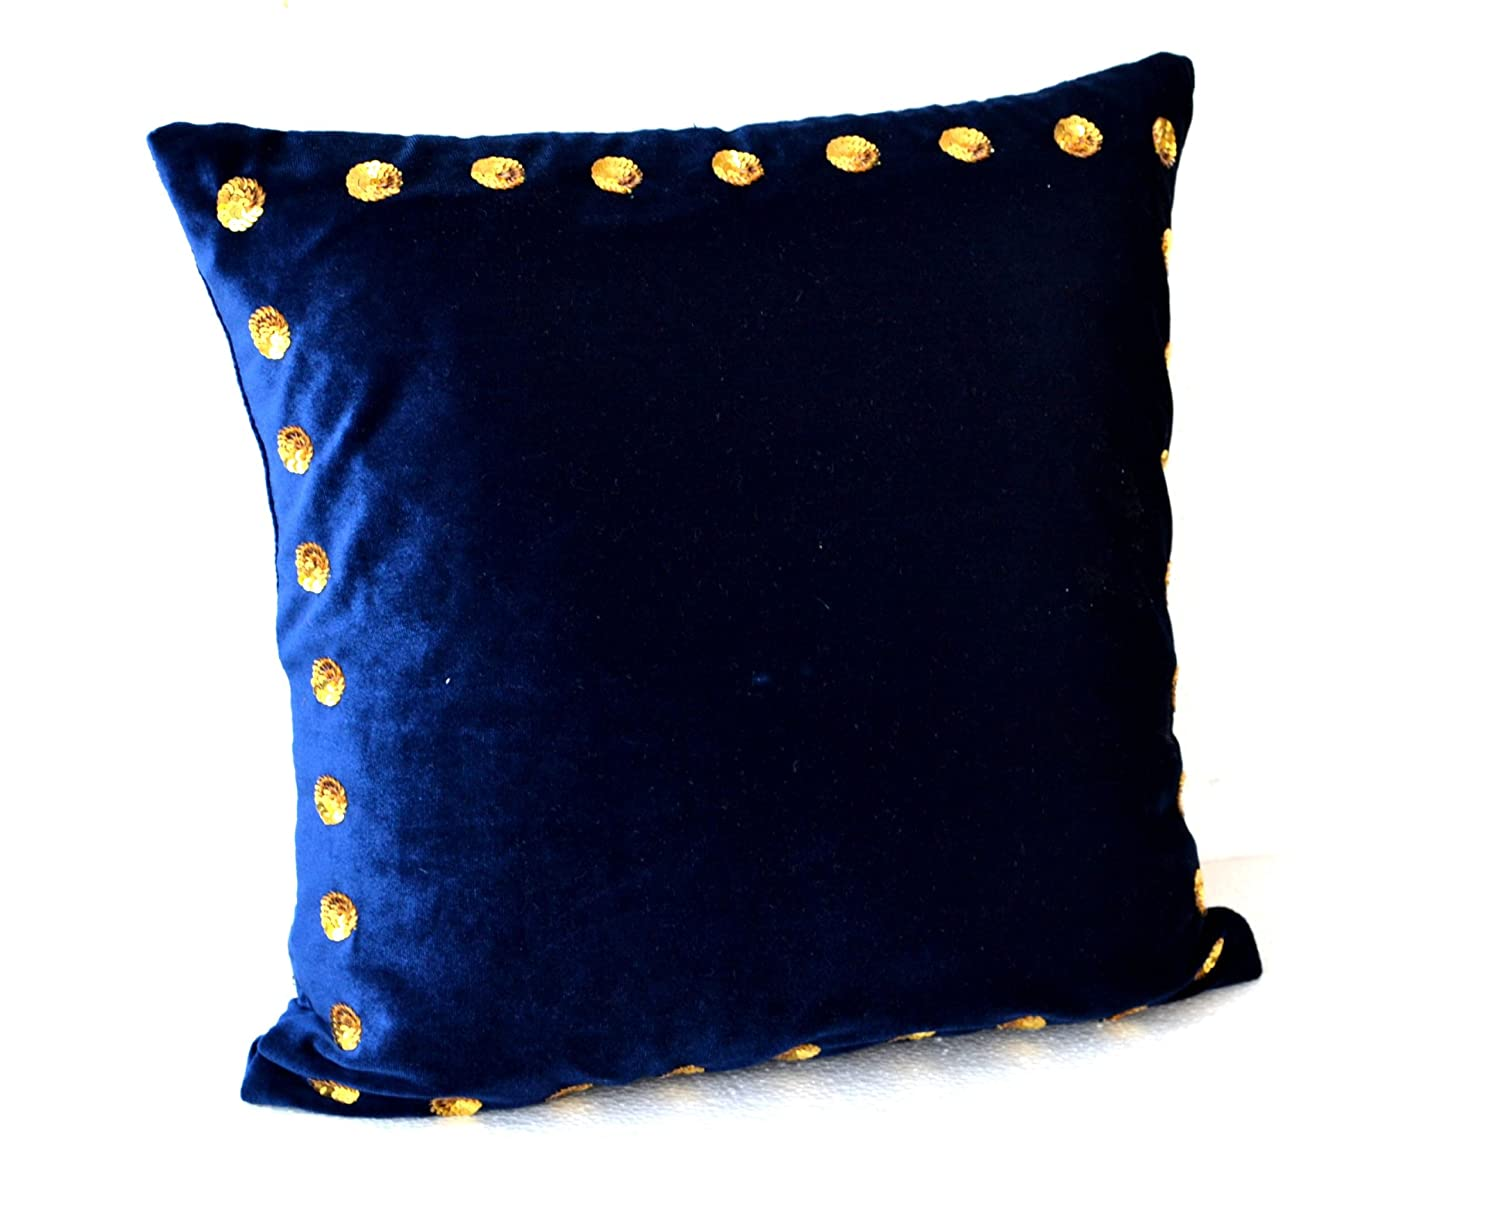 Navy blue and yellow decorative pillows - Amazon Com Navy Blue Pillow Covers Navy Blue Pillow In Velvet With Gold Sequin Detail 16x16 Navy Blue Throw Pillows In Velvet Toss Pillows Gift